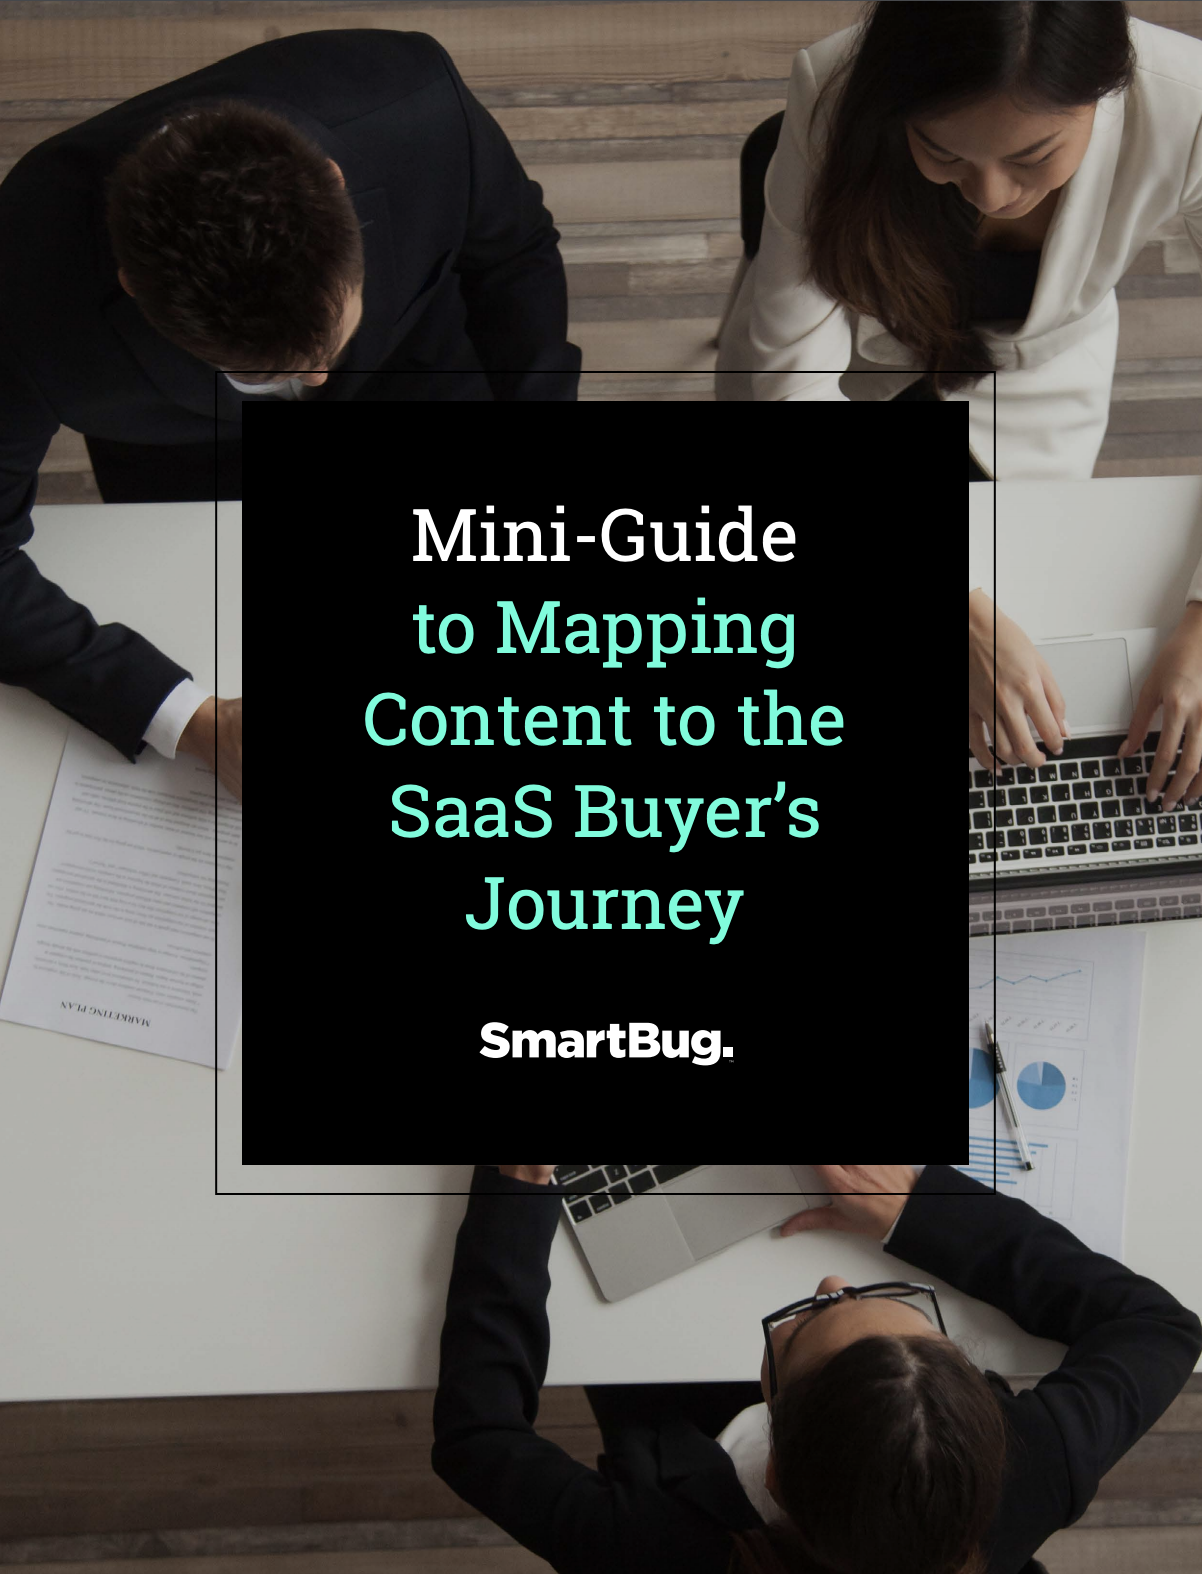 Guide to Mapping Content to the SaaS Buyer's Journey